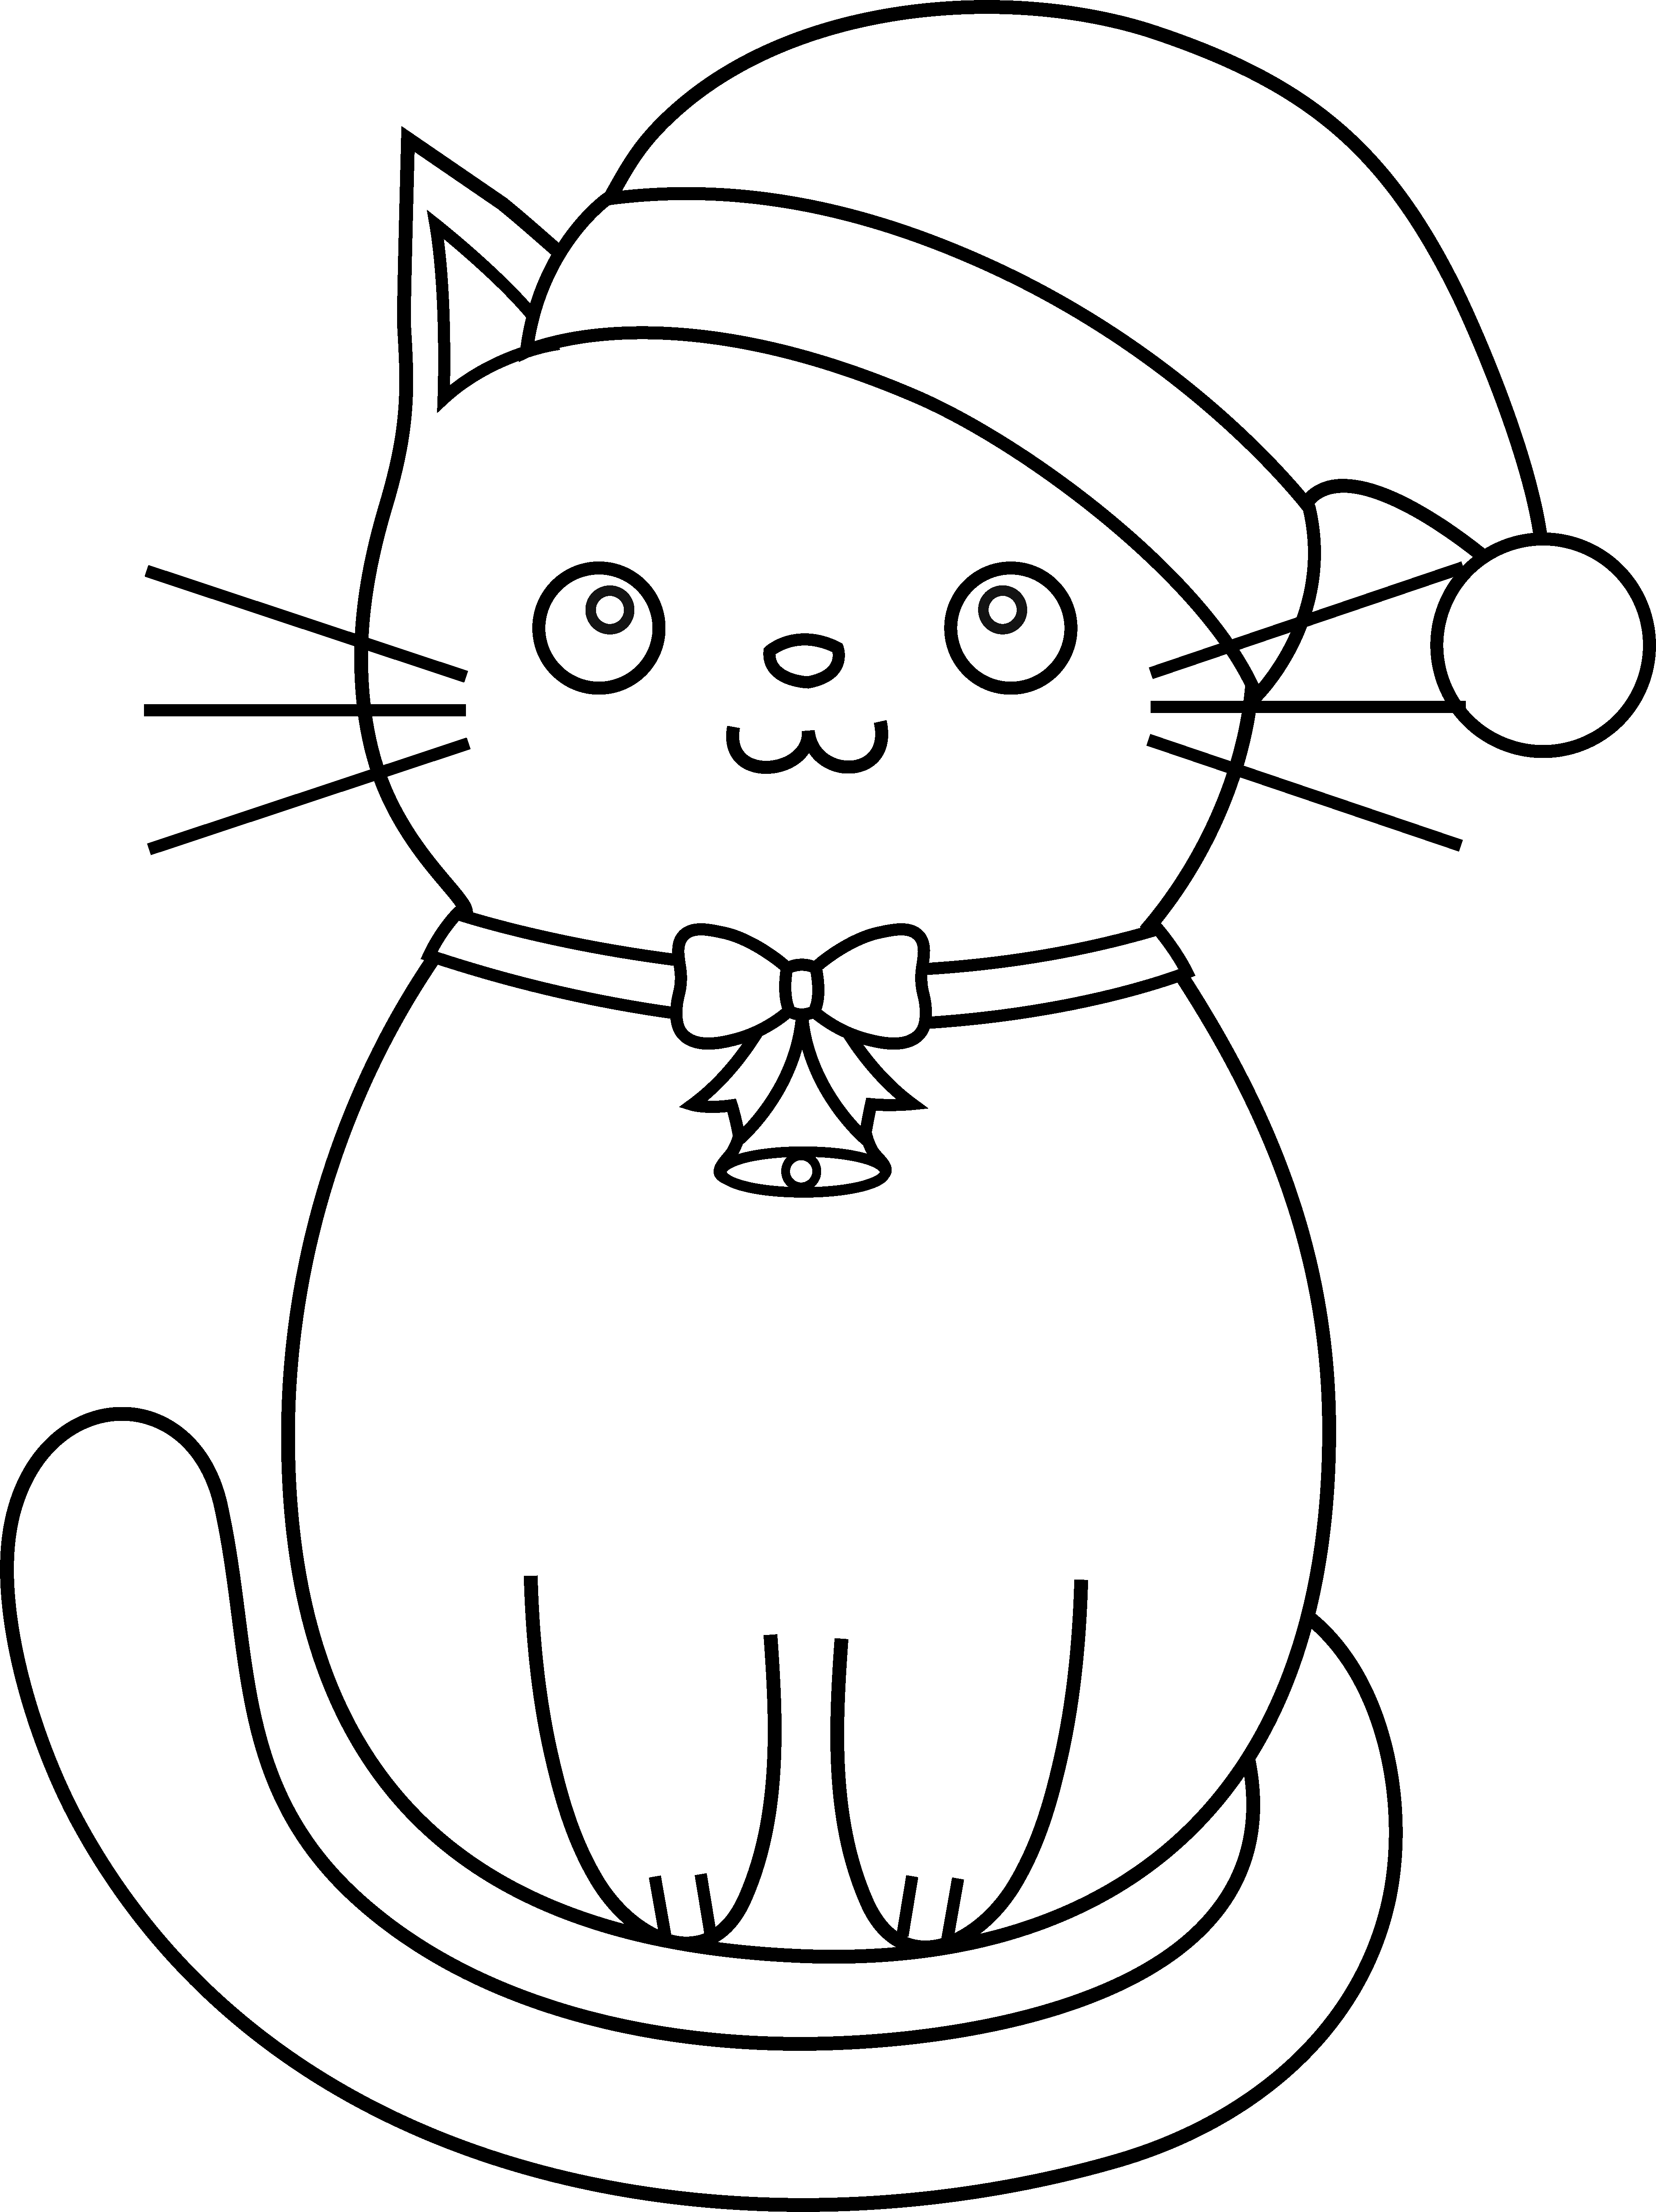 cat colouring pages free printable cat coloring pages for kids pages colouring cat